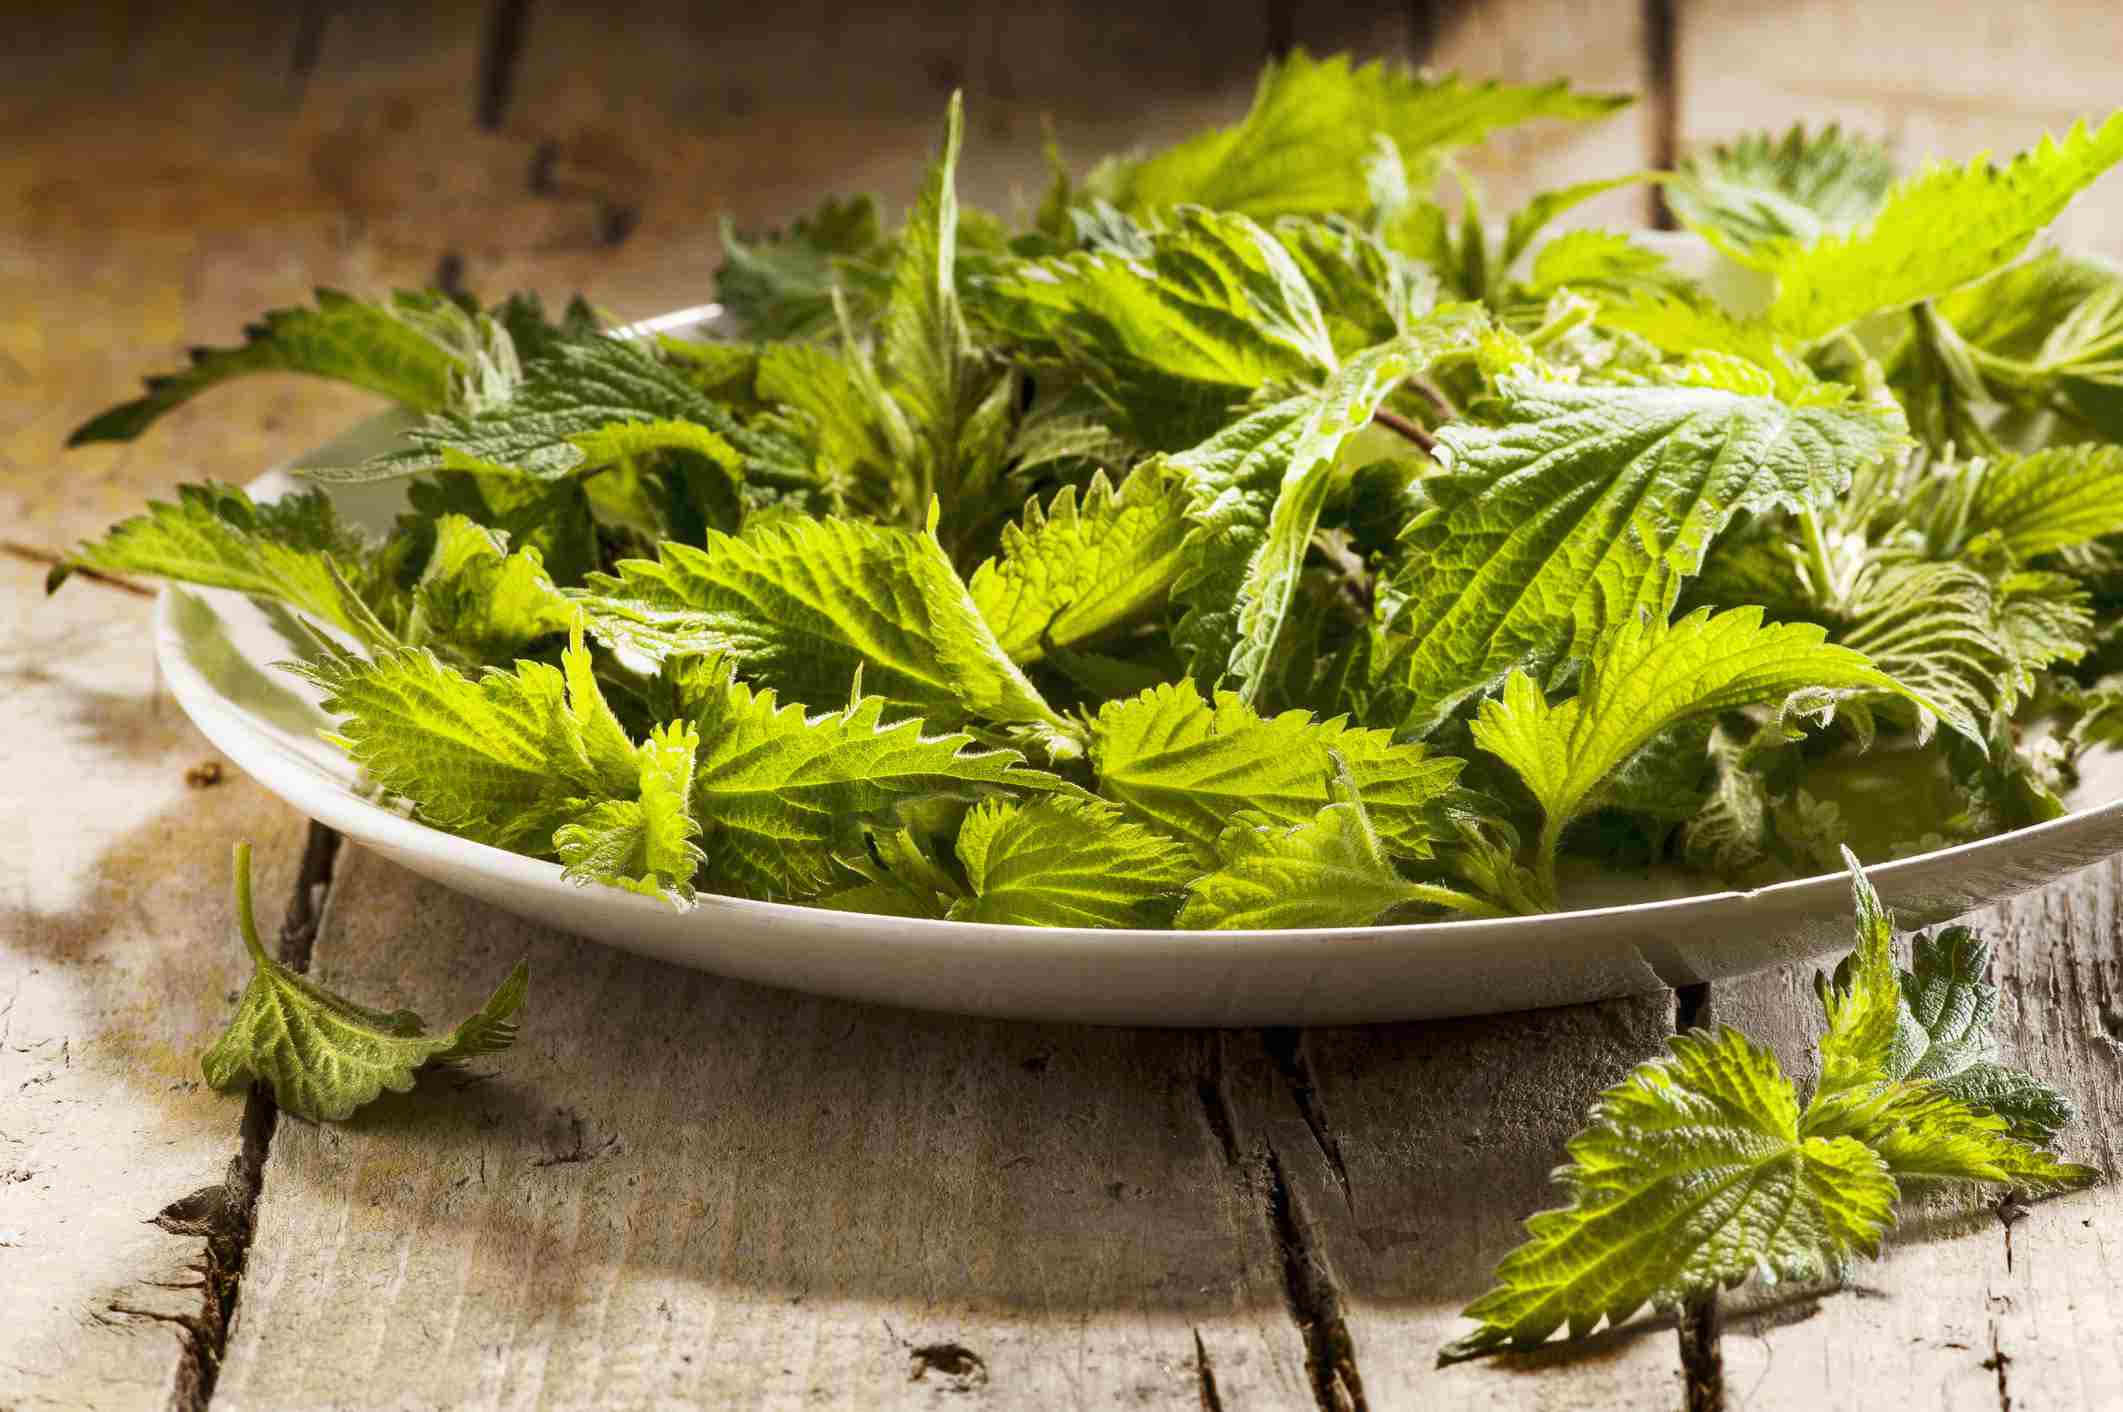 Fresh stinging nettle leaves in a bowl on a wooden table